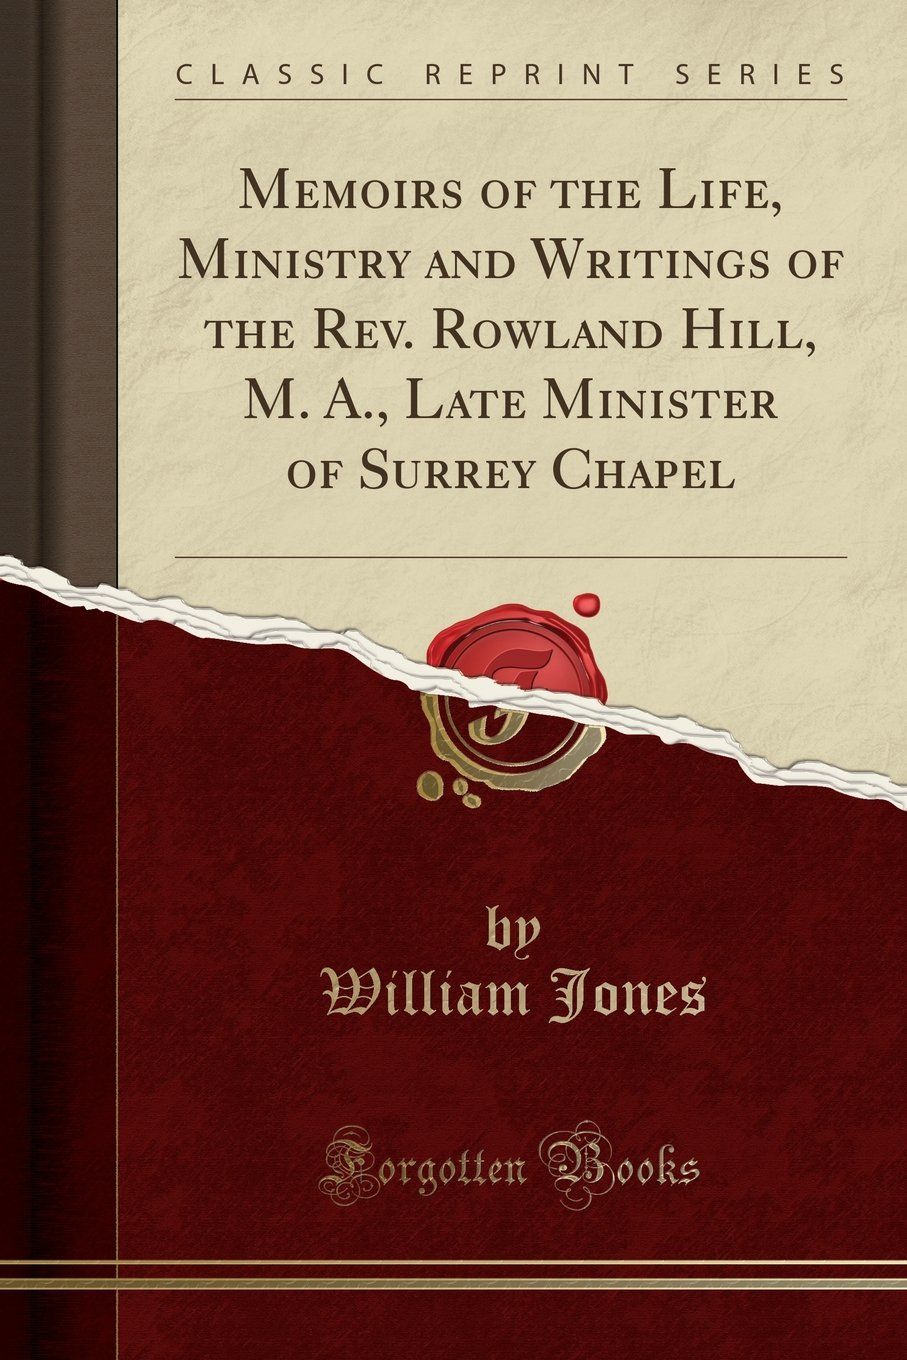 Download Memoirs of the Life, Ministry and Writings of the Rev. Rowland Hill, M. A., Late Minister of Surrey Chapel (Classic Reprint) ebook